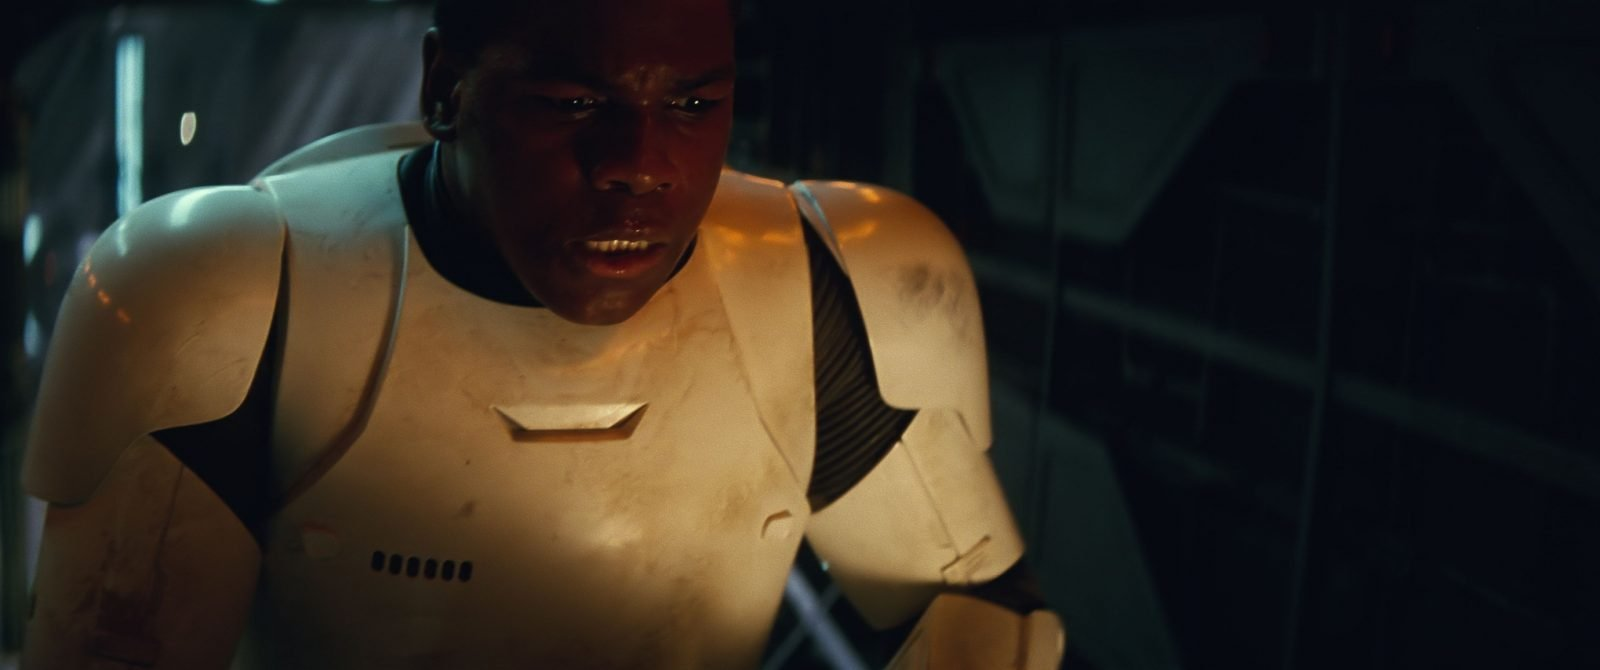 Star Wars VII The Force Awakens 25 - Finn in stormtrooper armor